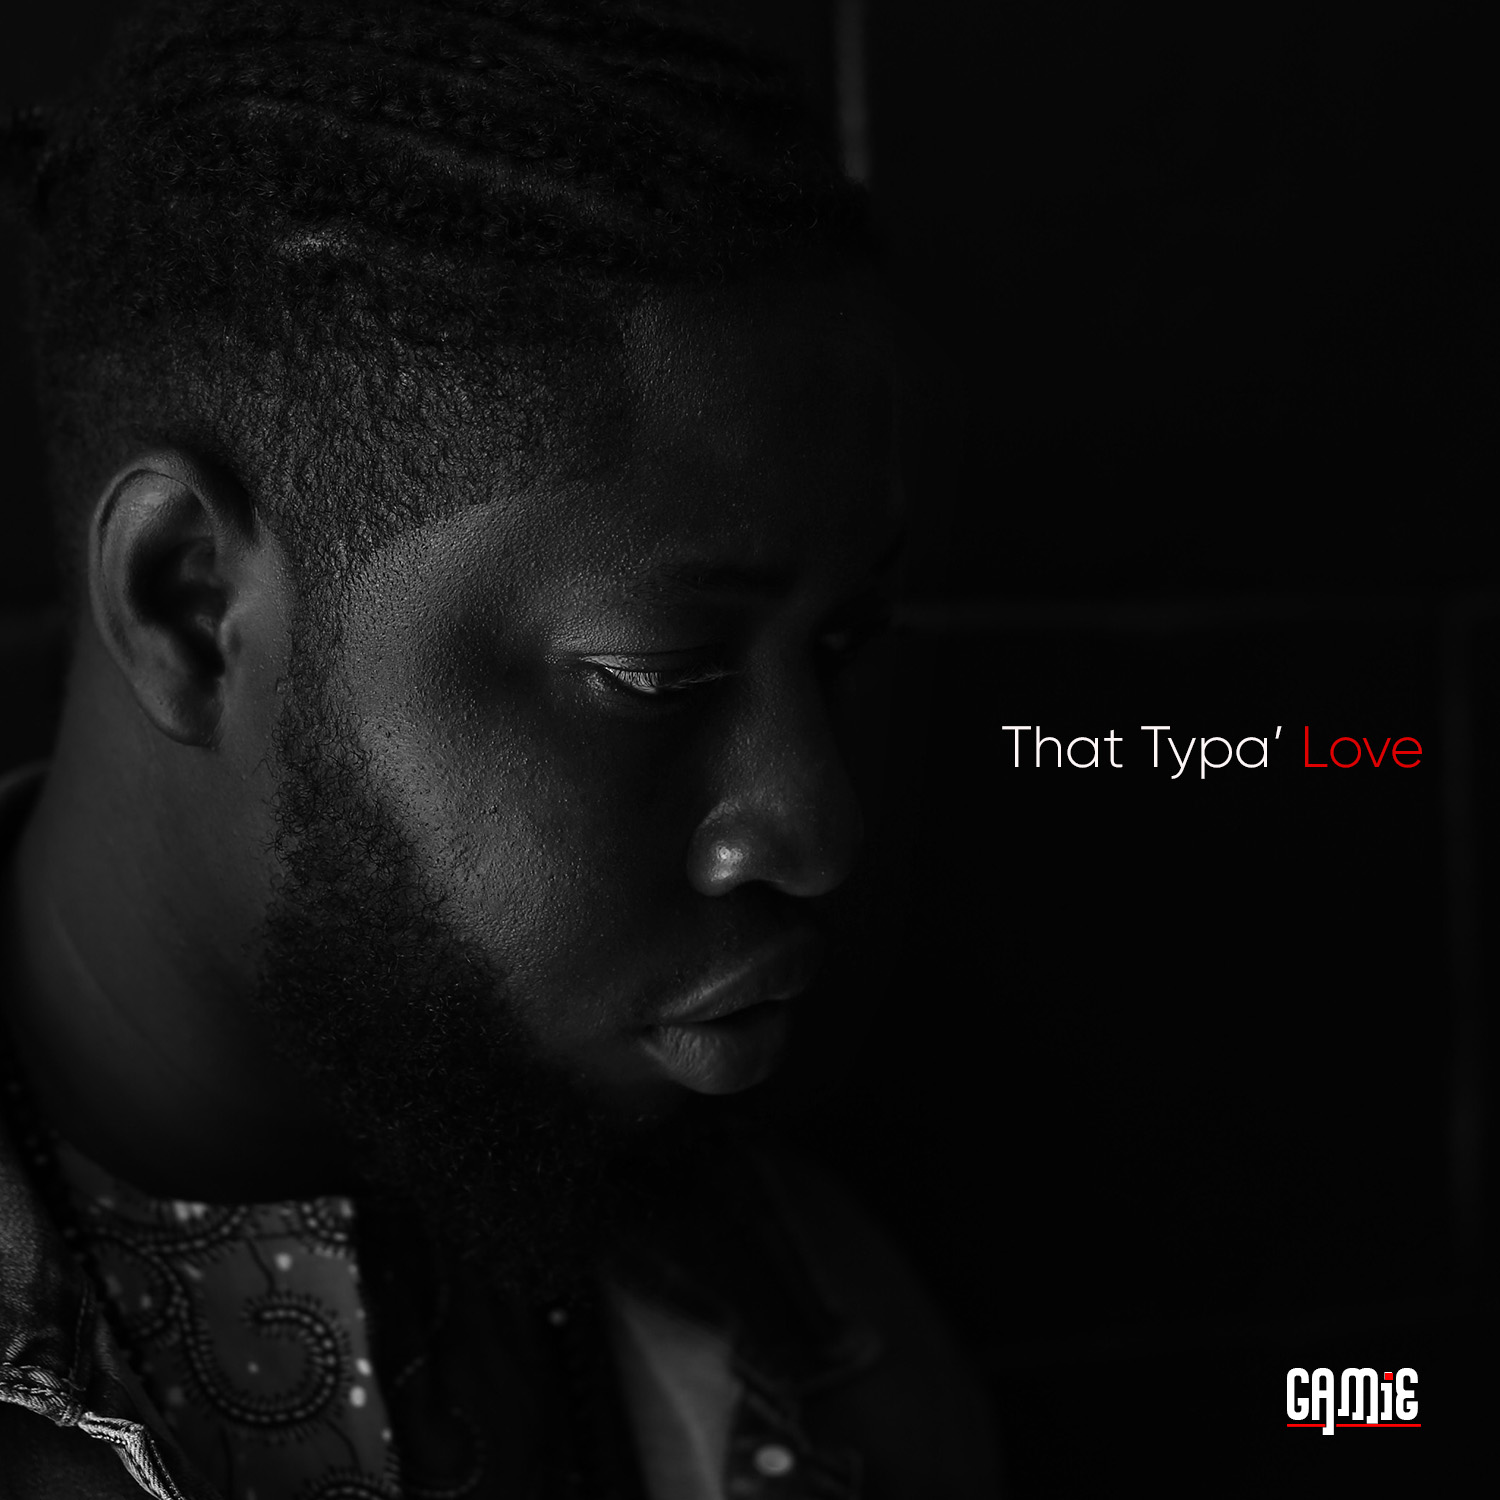 GAMiE - That Typa Love